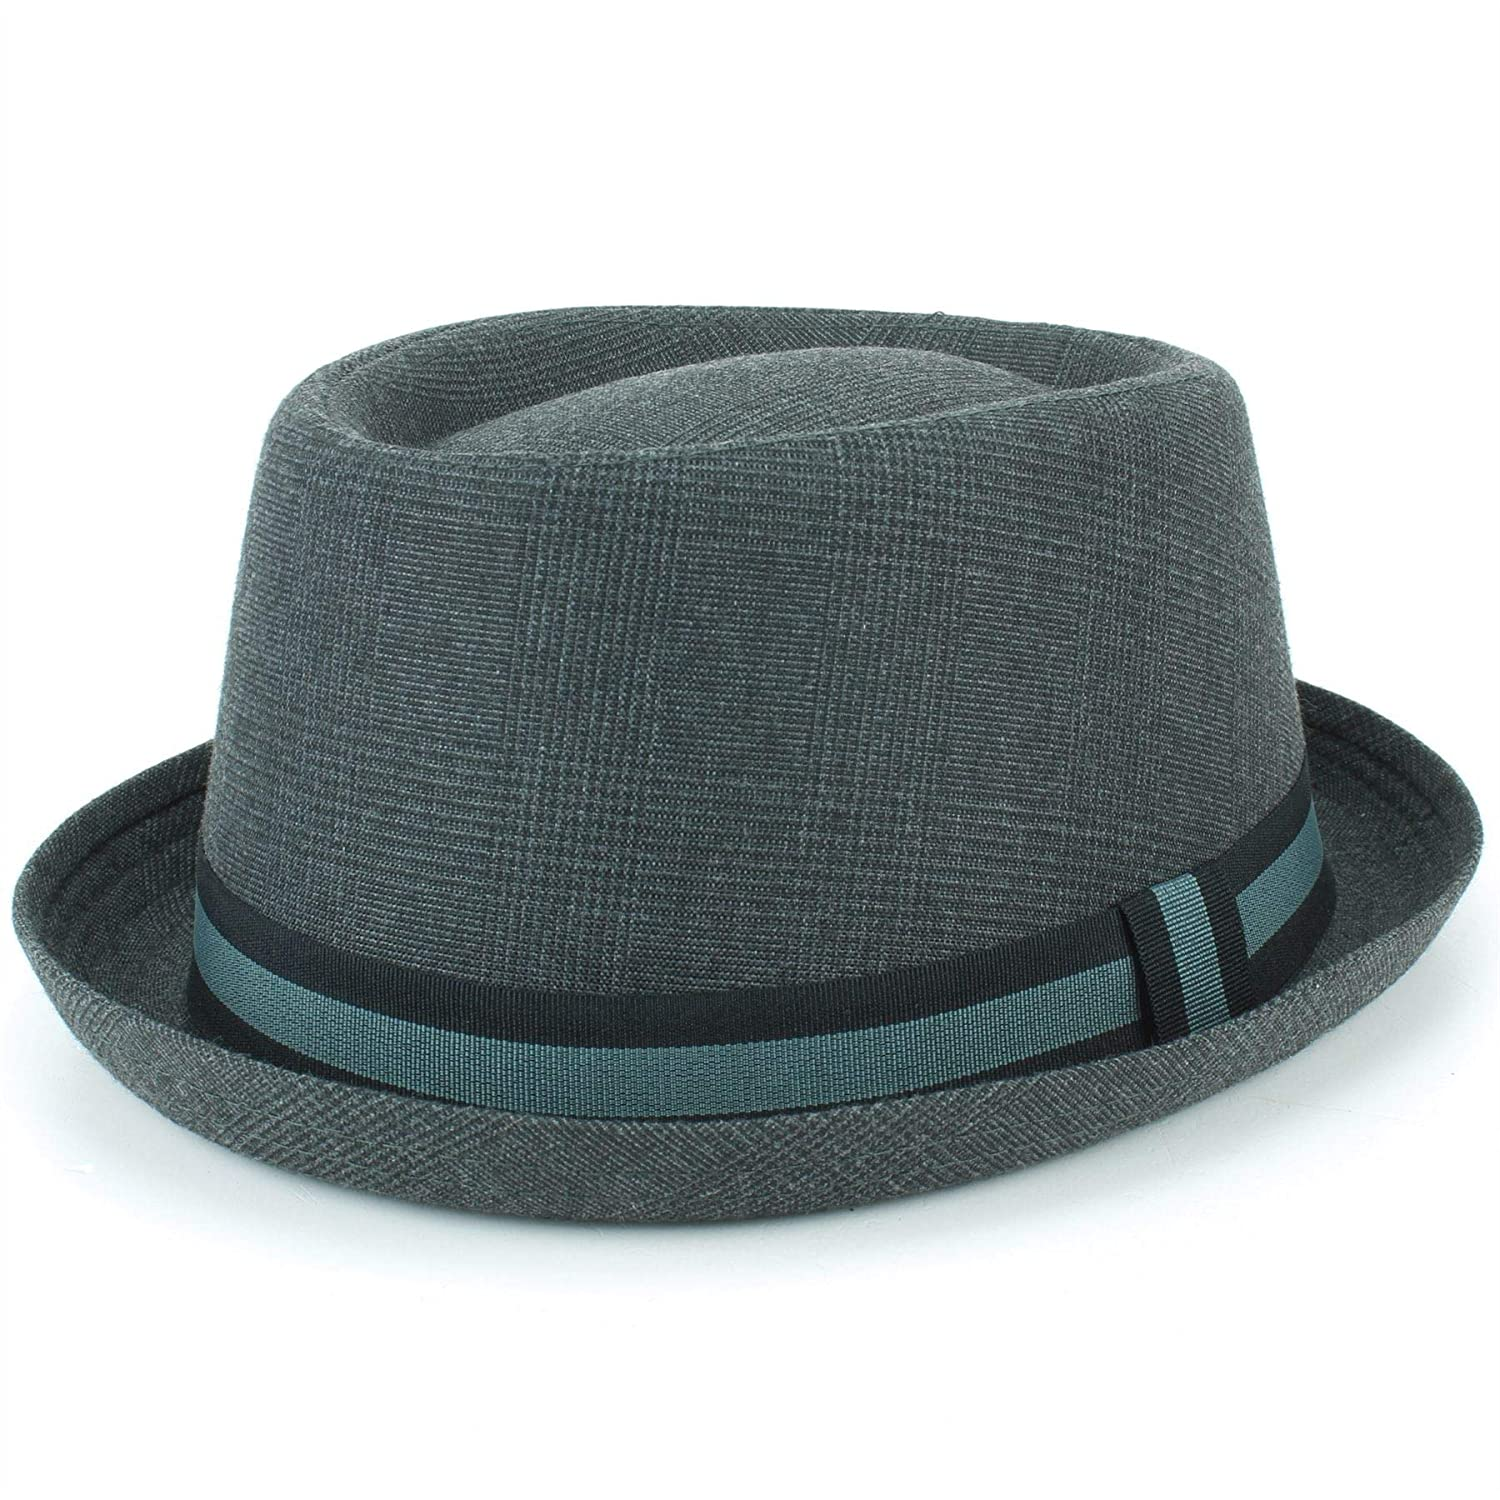 Hawkins Grey Tweed Porkpie Hat Pork Pie Trilby Fedora